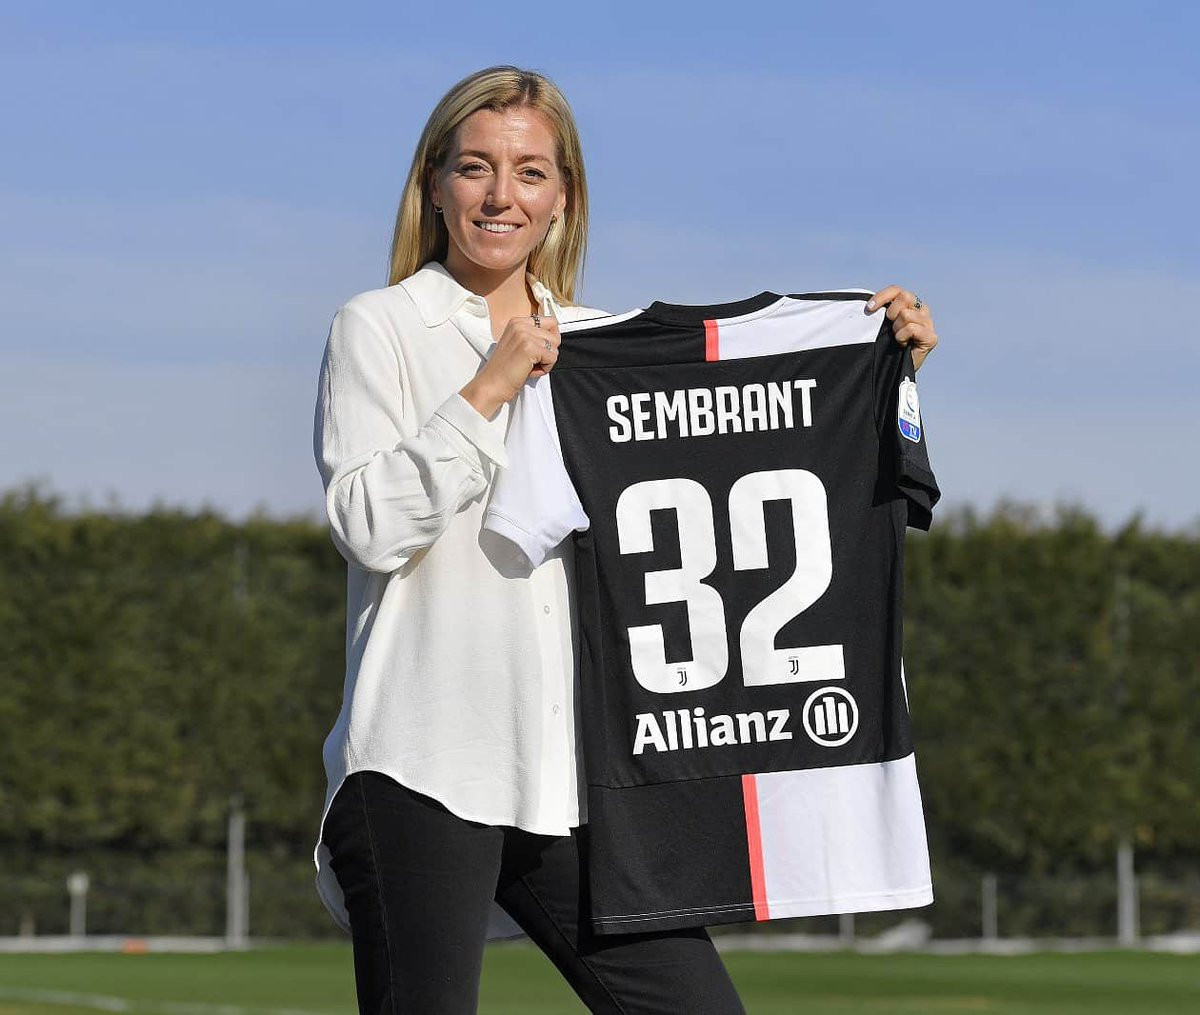 Juventus until 2021 ✍️⚪⚫ I'm happy and honored to have renewed my contract with @JuventusFCWomen 🔥  #finoallafine #LiveAhead #juventuswomen